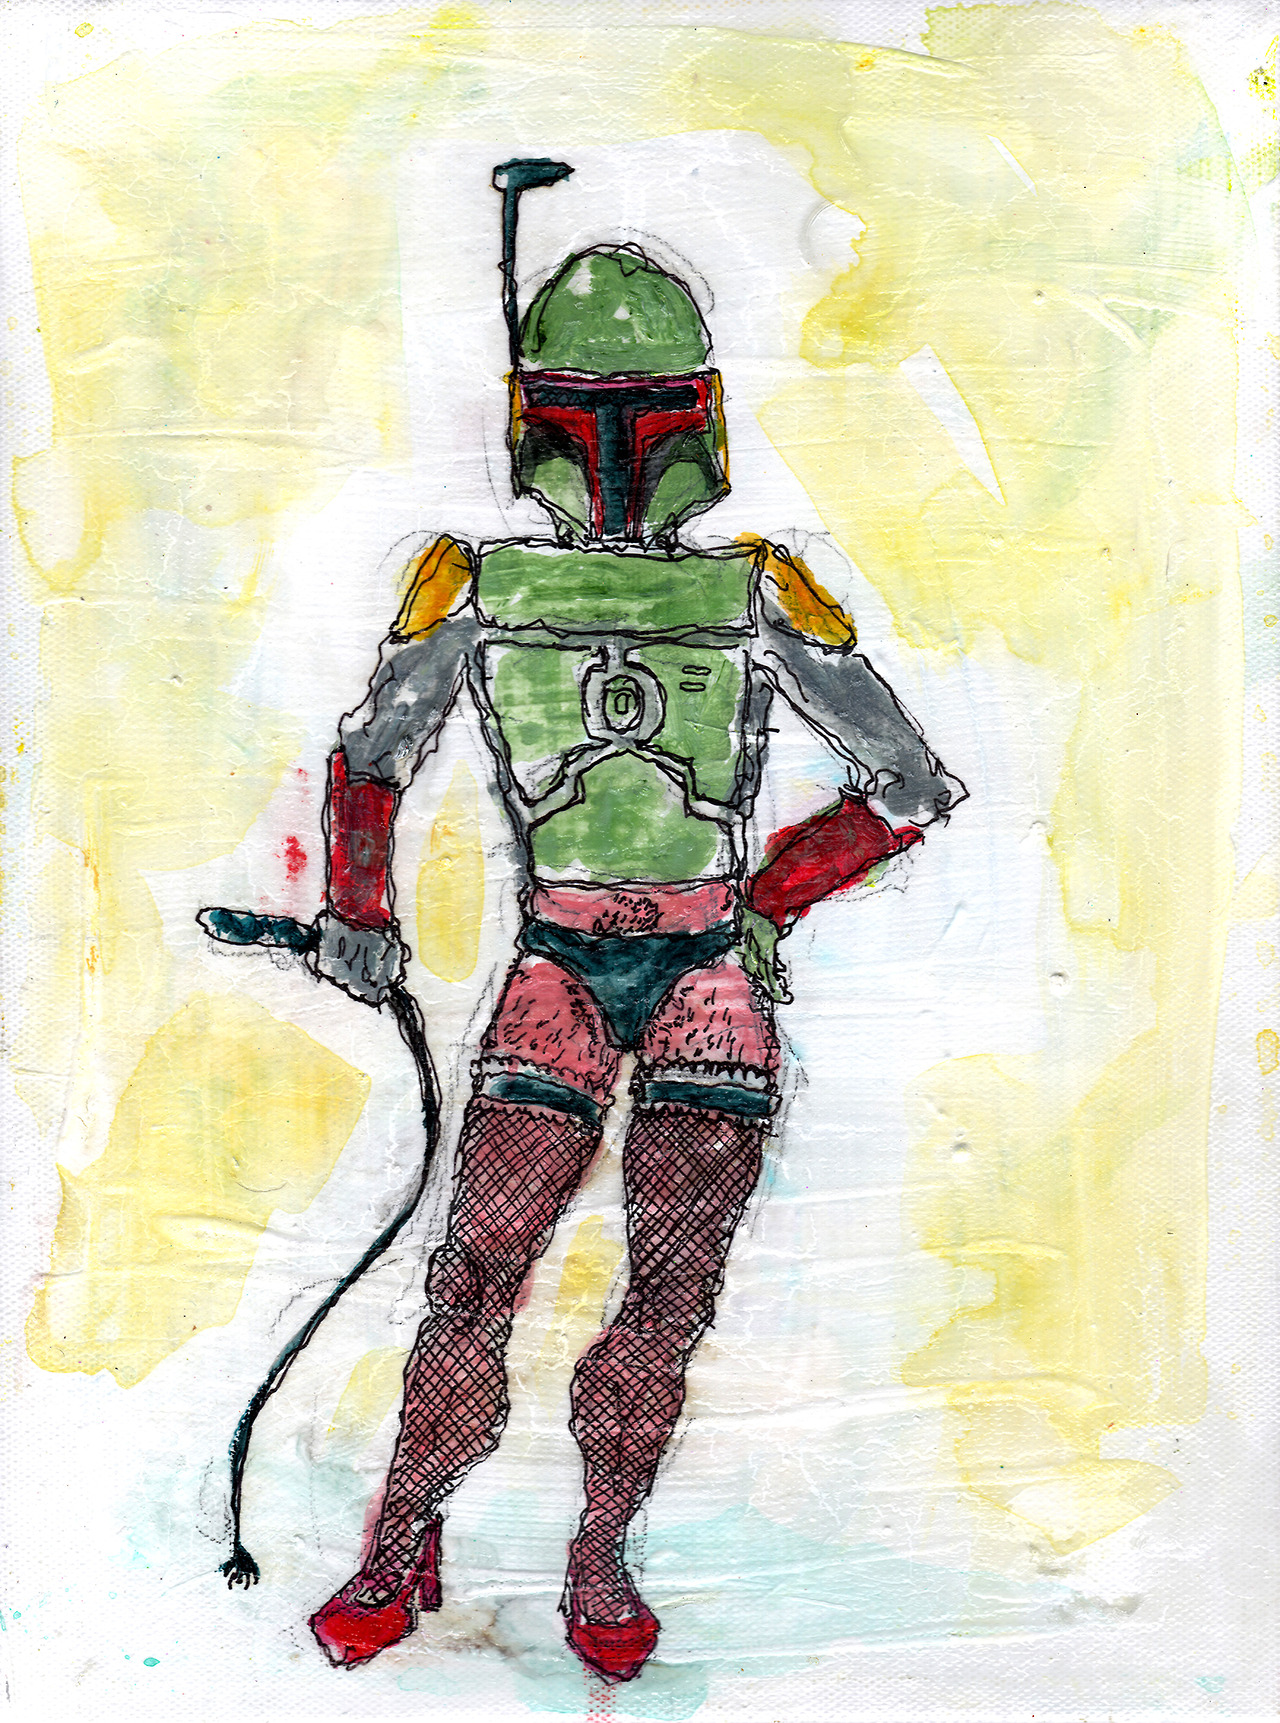 11/14/13 - Boba Fett Ish. Ish. http://www.kickstarter.com/projects/taylorwinder/the-art-book-of-the-year